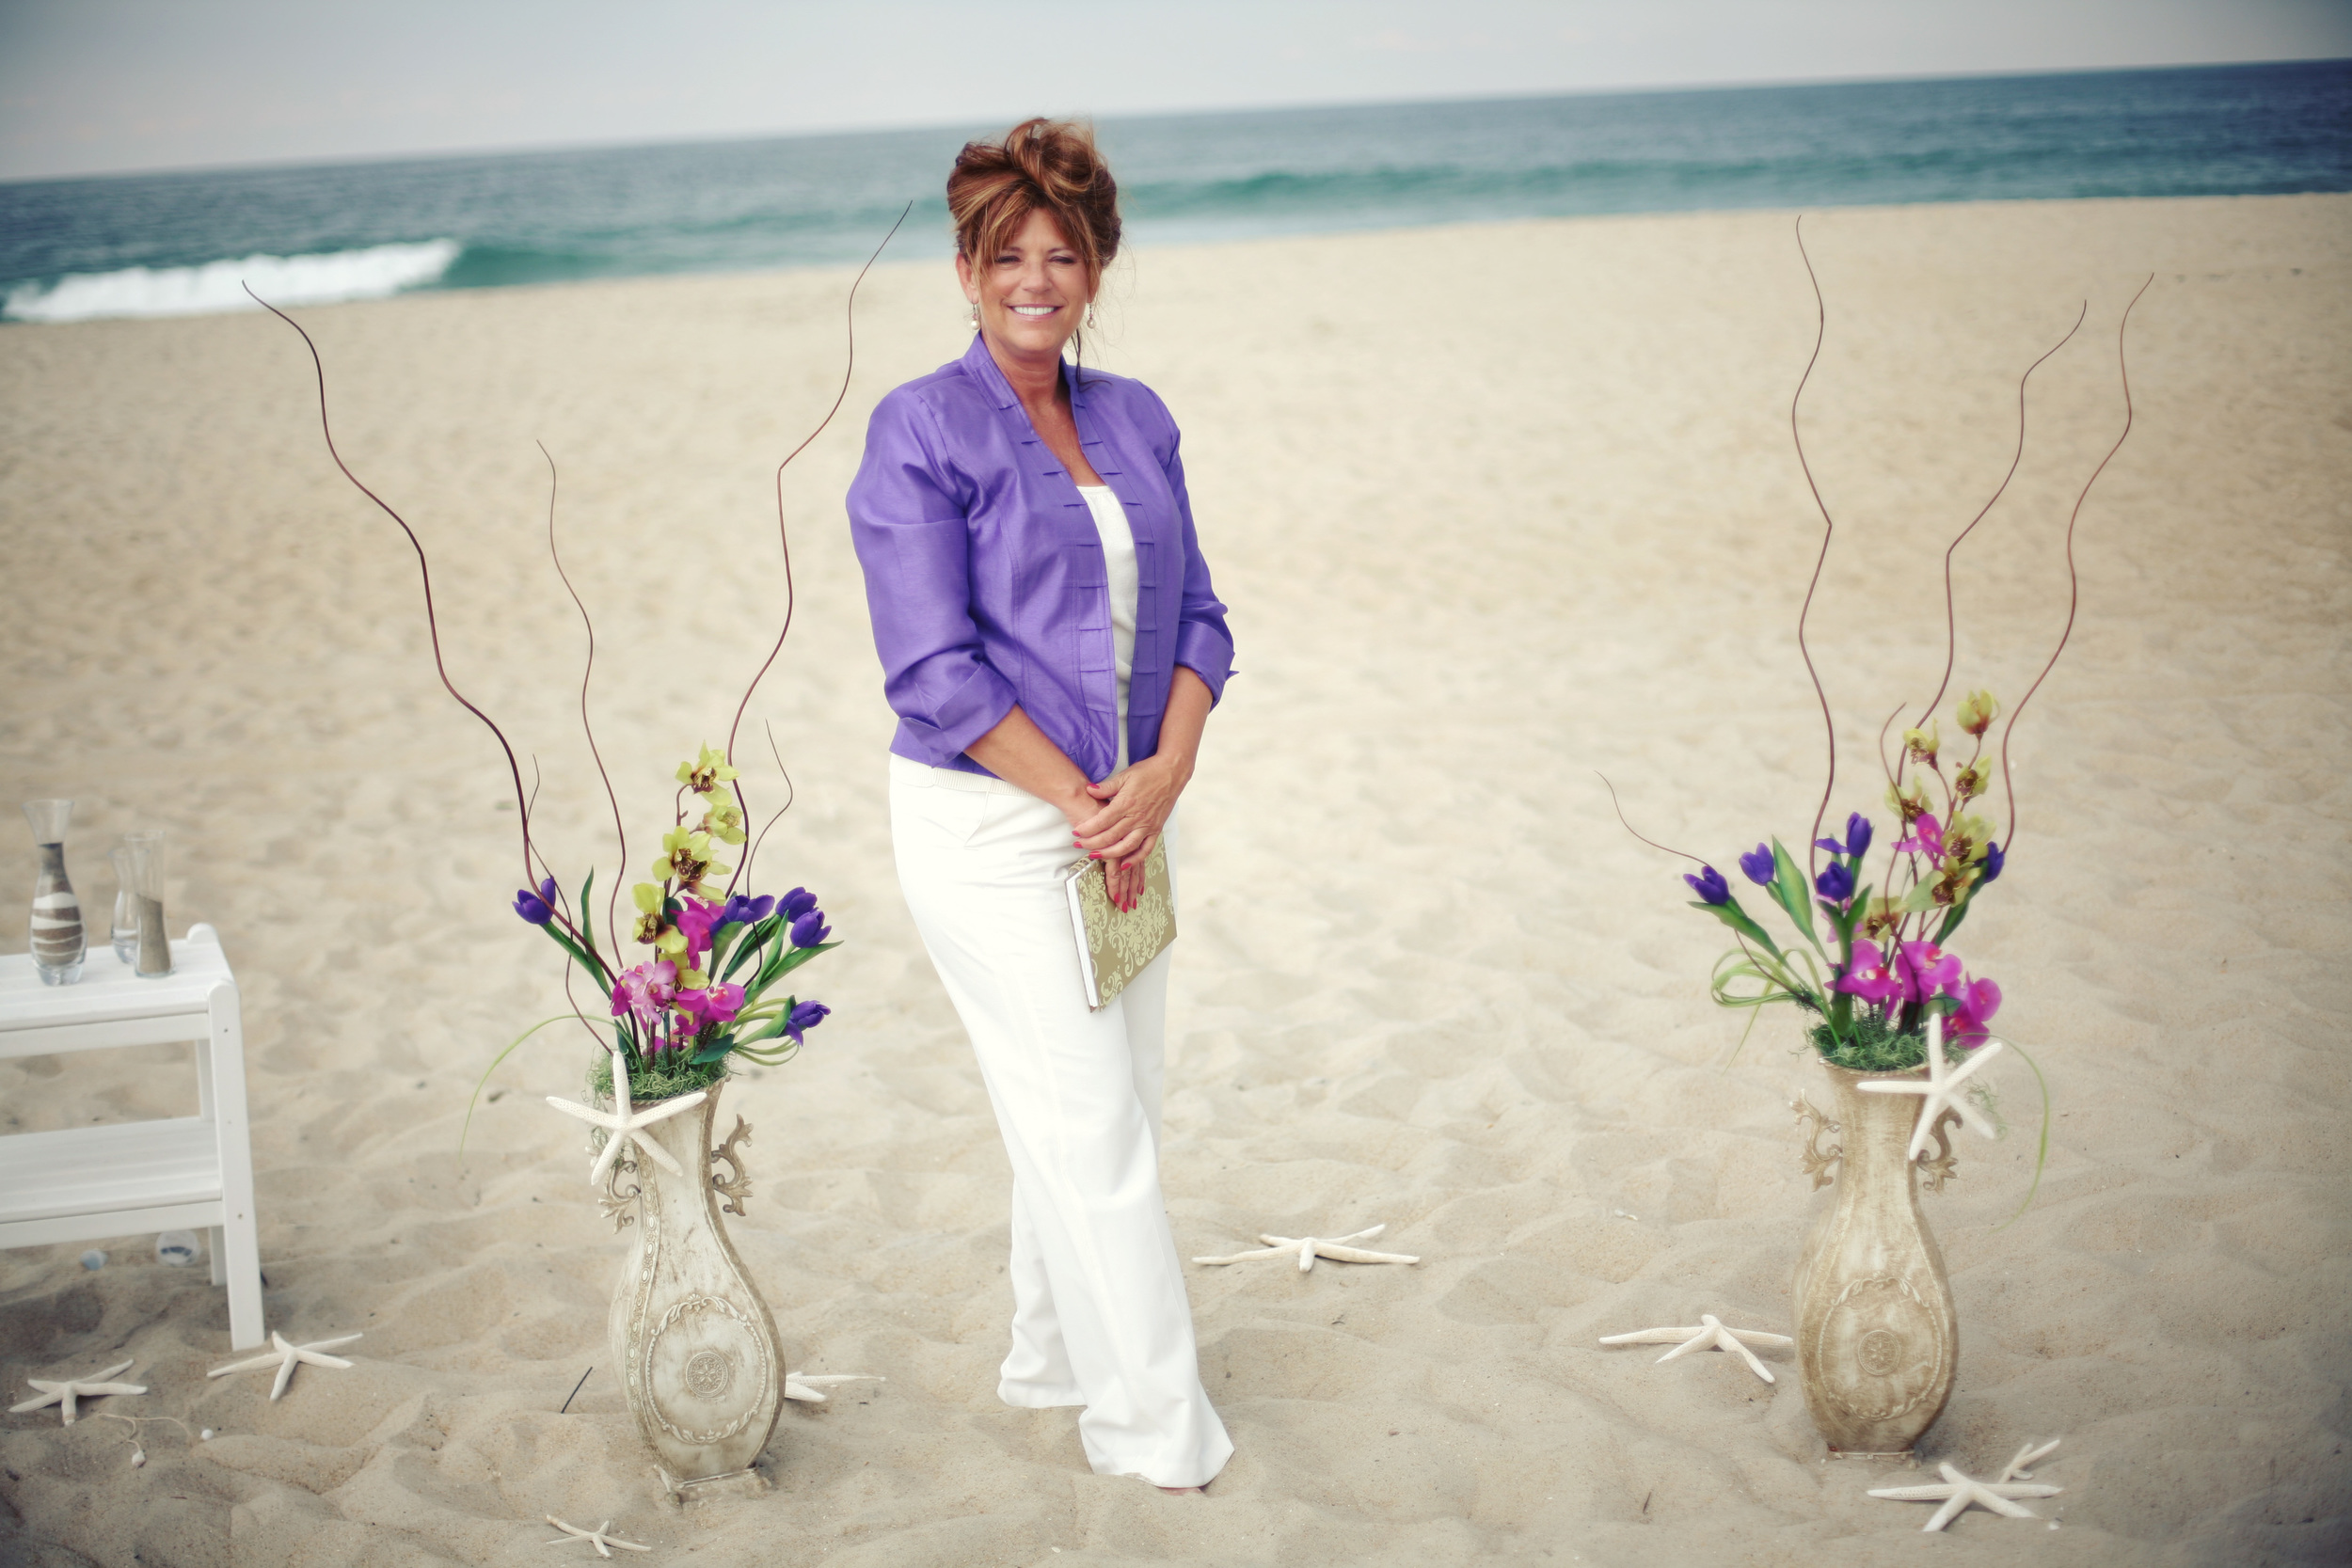 Rev. Shirley Anne, Outer Banks Minister, Carolina Wedding Company